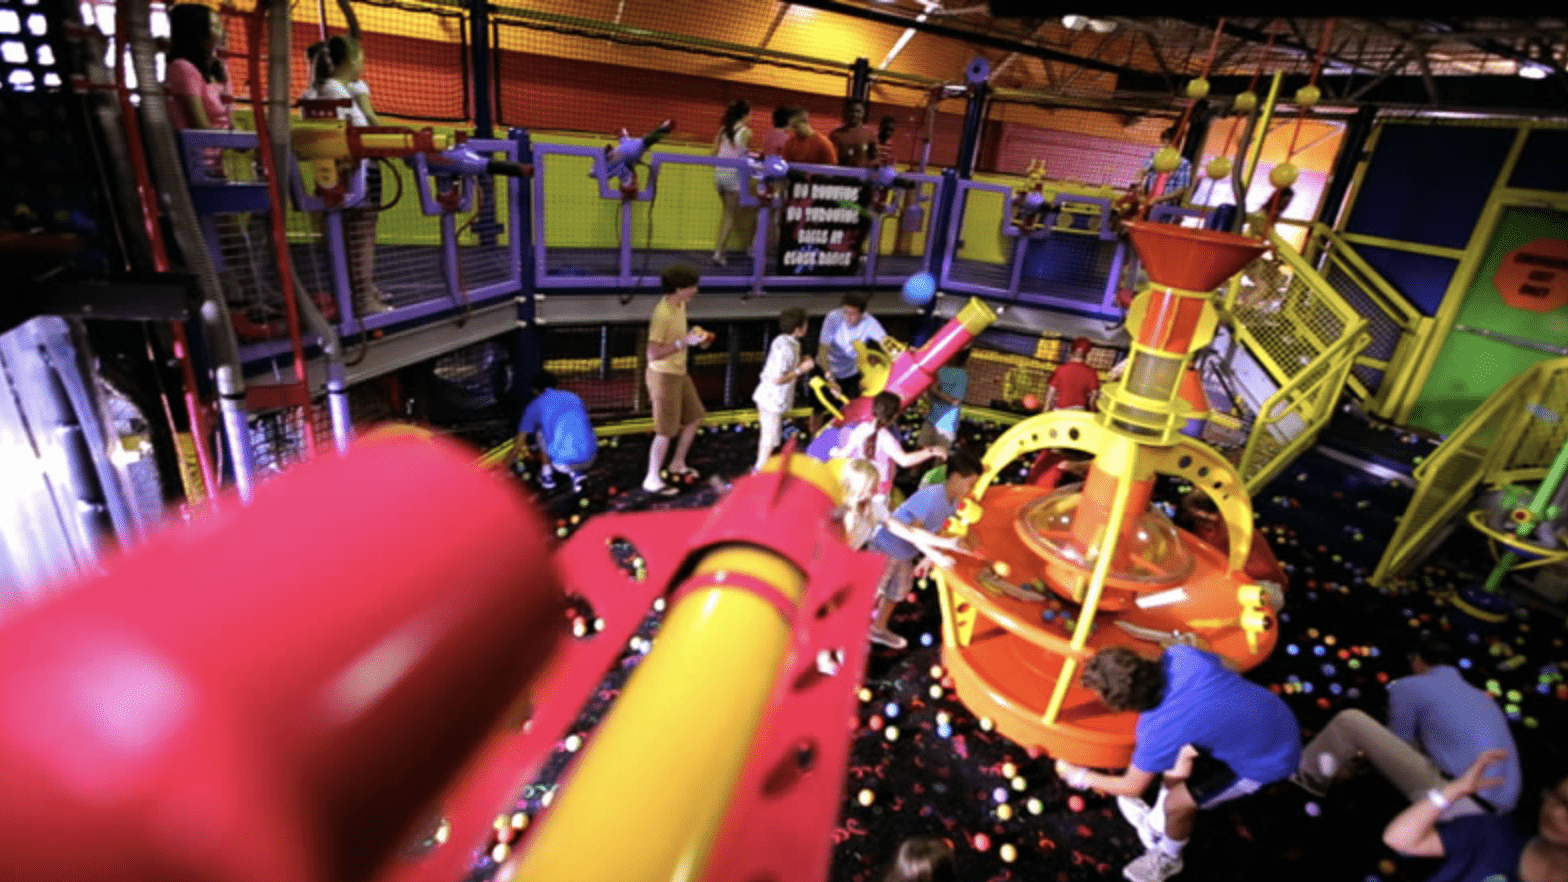 FunPlex Amusement Park